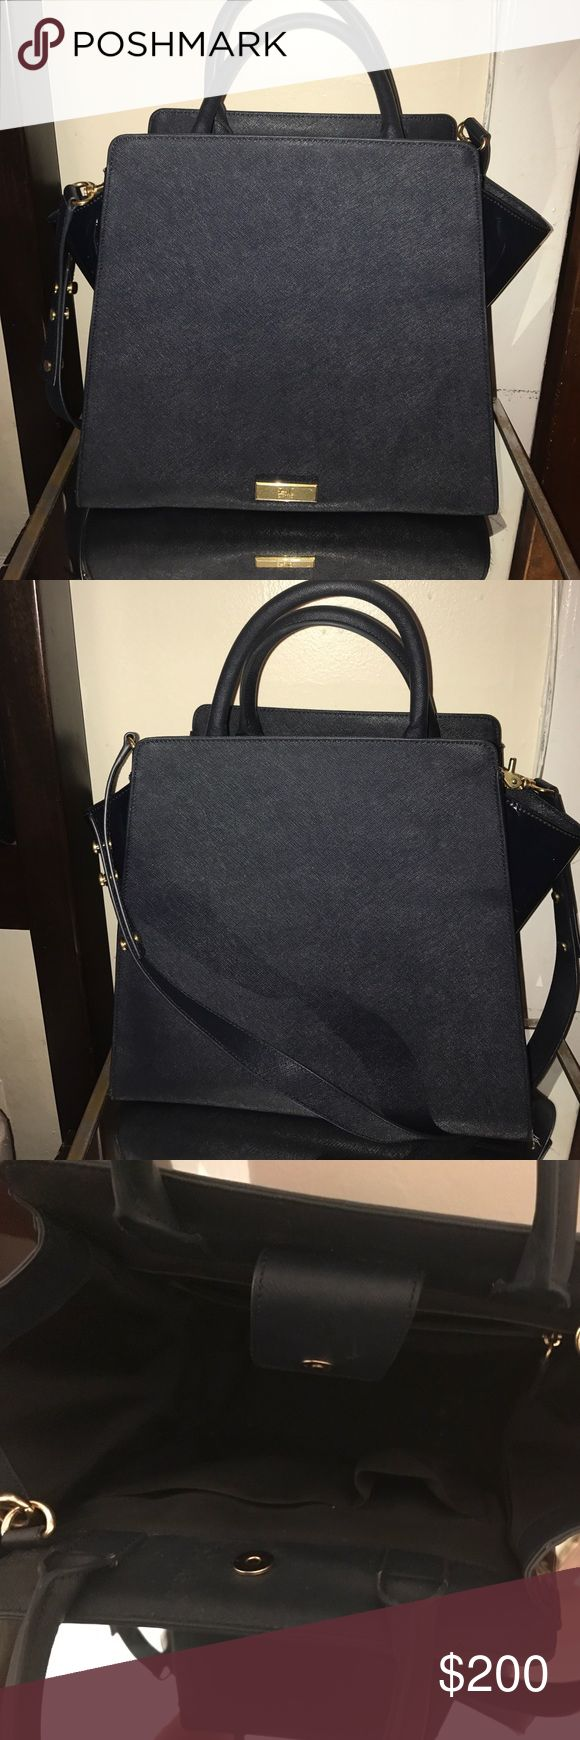 Zac Posen Handbag (Large)-Barely used Navy blue-Leather with pantent leather sides I have many Zac Posen bags and I have decided to let this one go to a new home! I promise you will get nothing but compliments! This bag is a must have!! Zac Posen Bags Satchels